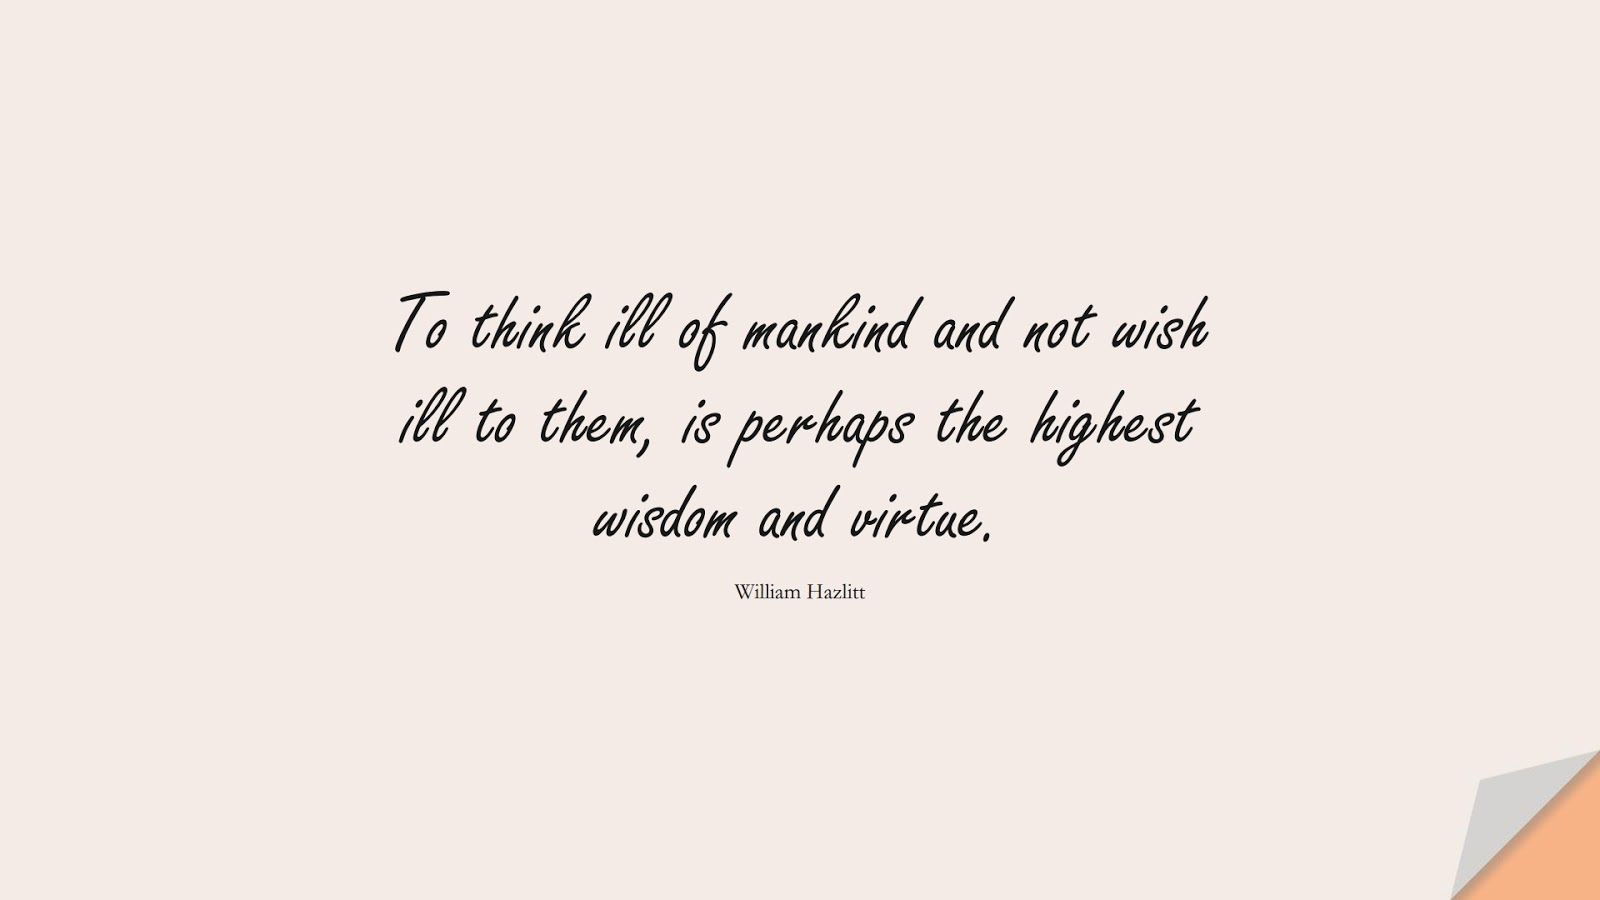 To think ill of mankind and not wish ill to them, is perhaps the highest wisdom and virtue. (William Hazlitt);  #HumanityQuotes